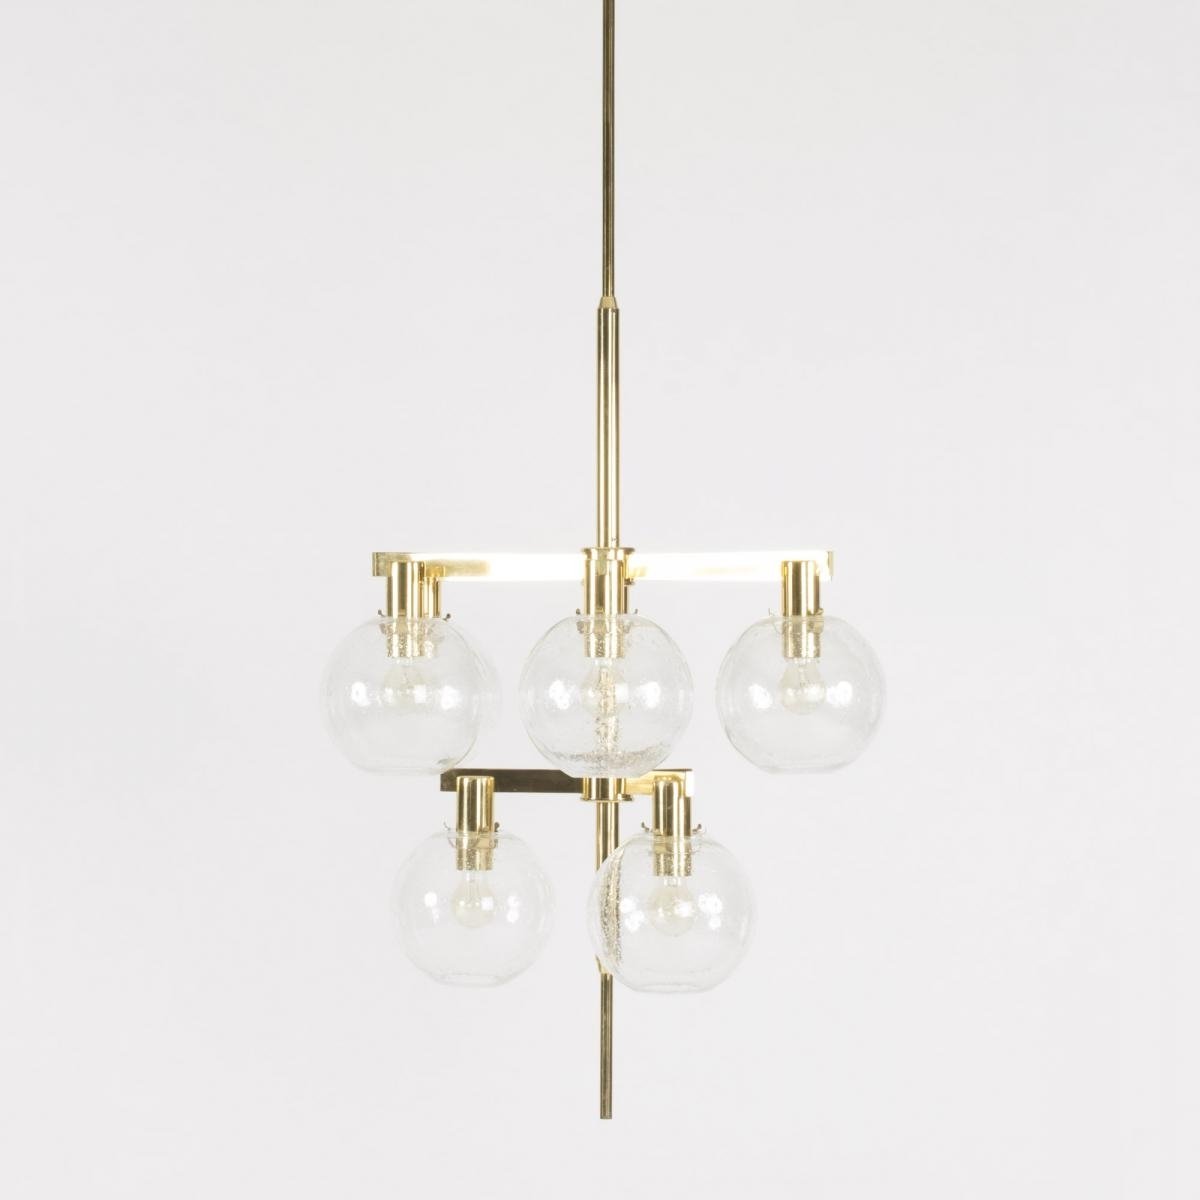 Brass And Glass Chandelier Regarding Most Up To Date Brass And Glass Chandelier From Hans Agne Jakobsson, 1960s For Sale (View 17 of 20)